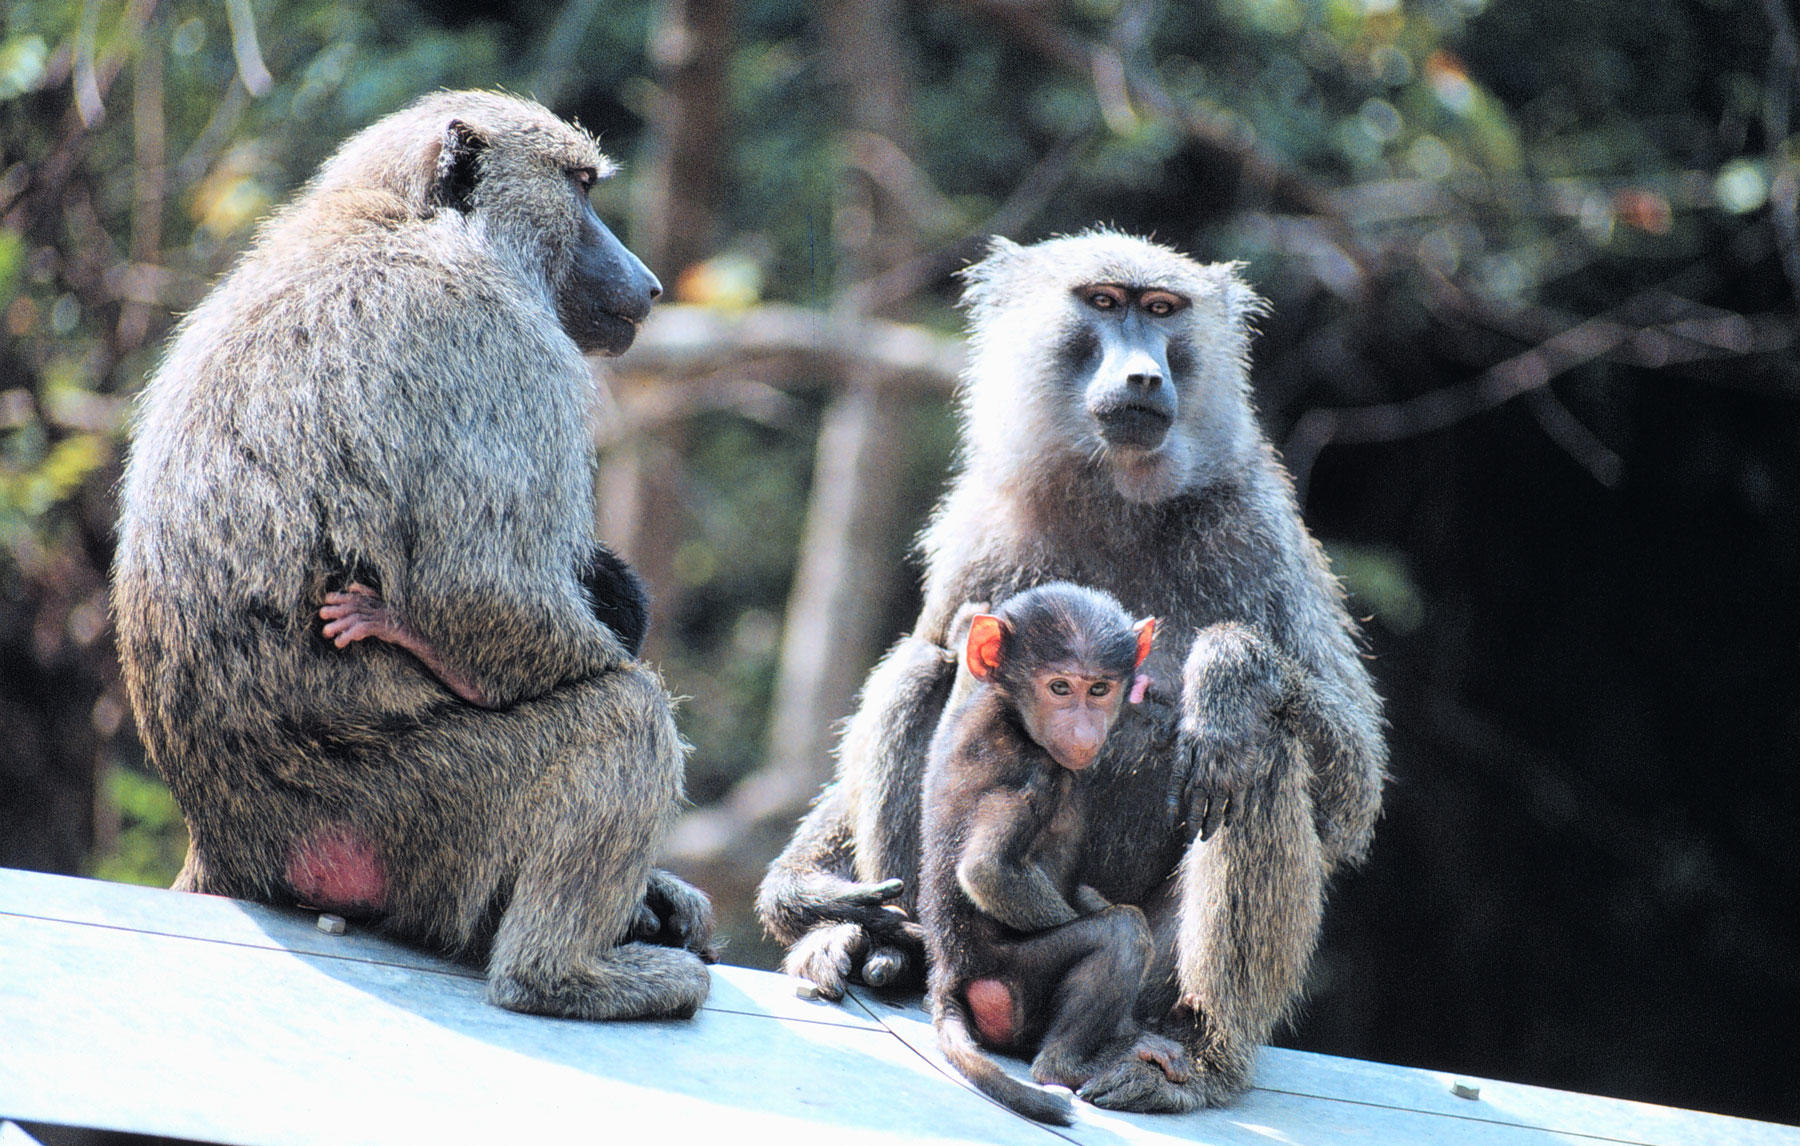 Two (gray, brown) adult baboons (sitting, facing) each other, baby baboon sitting between legs of each adult, trees in background.